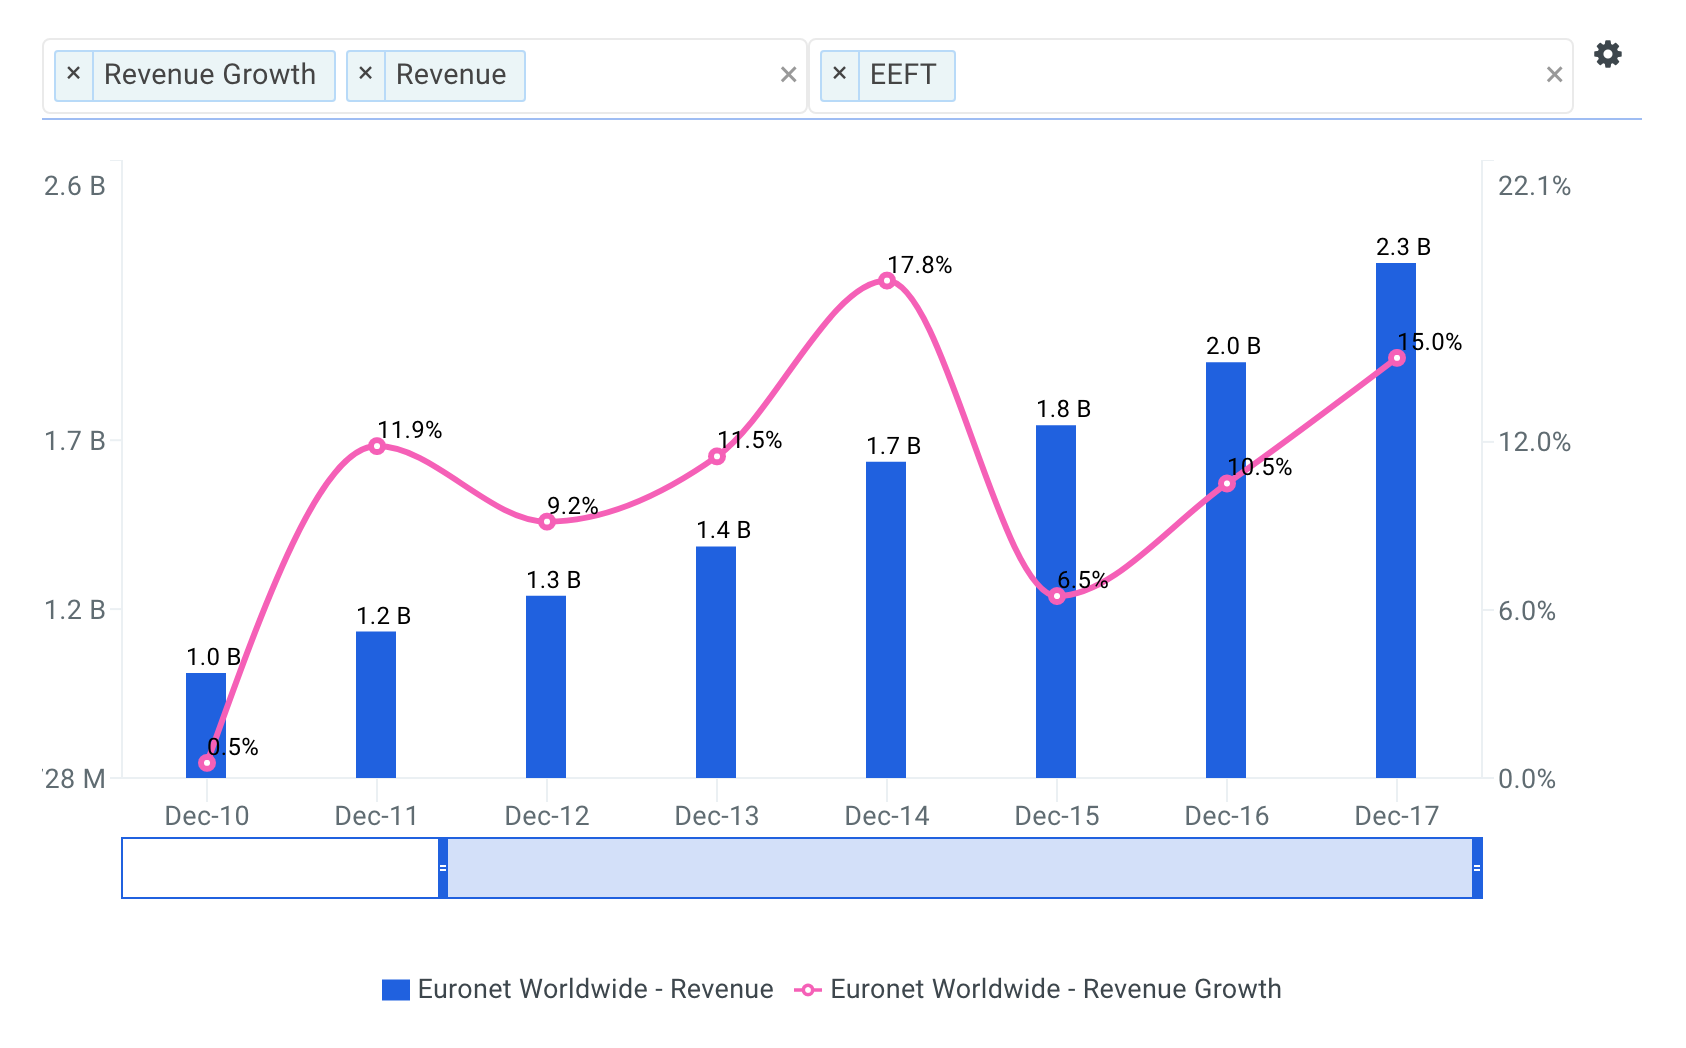 Euronet Worldwide Revenue Growth Chart